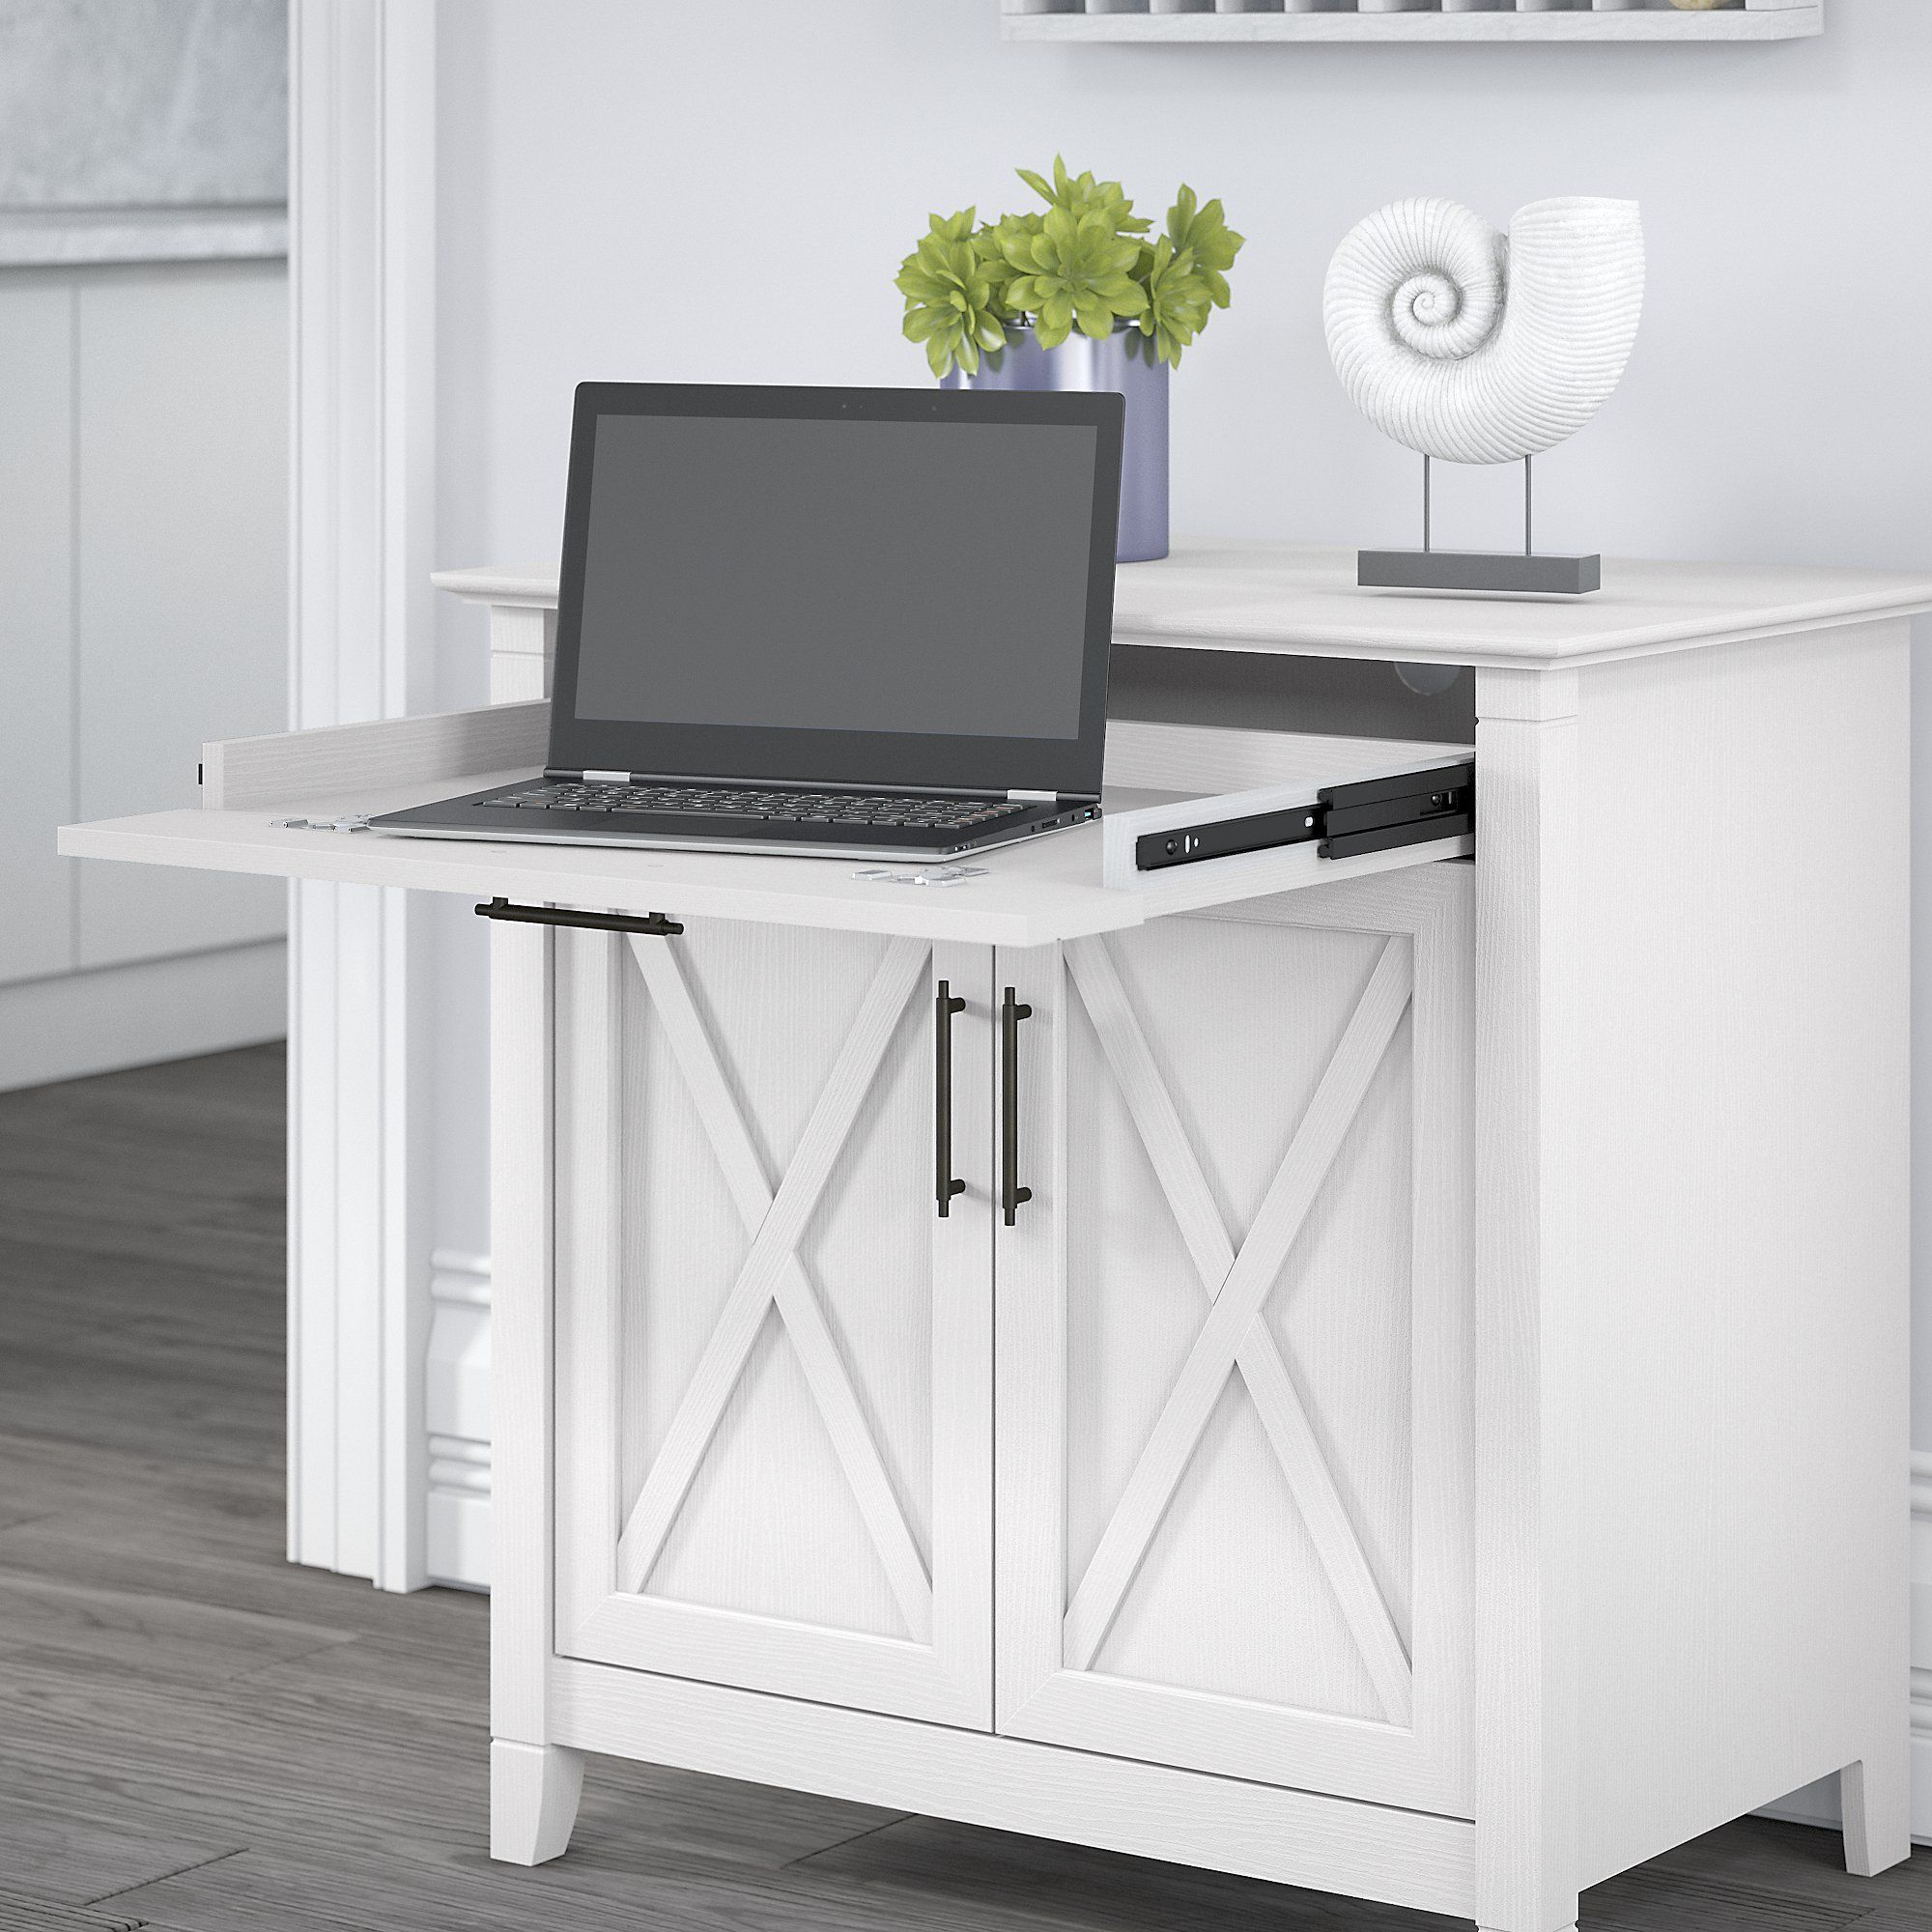 Secretary Desk With Storage Drawers White Drop Front Writing For Home Office Crosley Cottage White Secretary Desk Secretary Desks Home Office Furniture